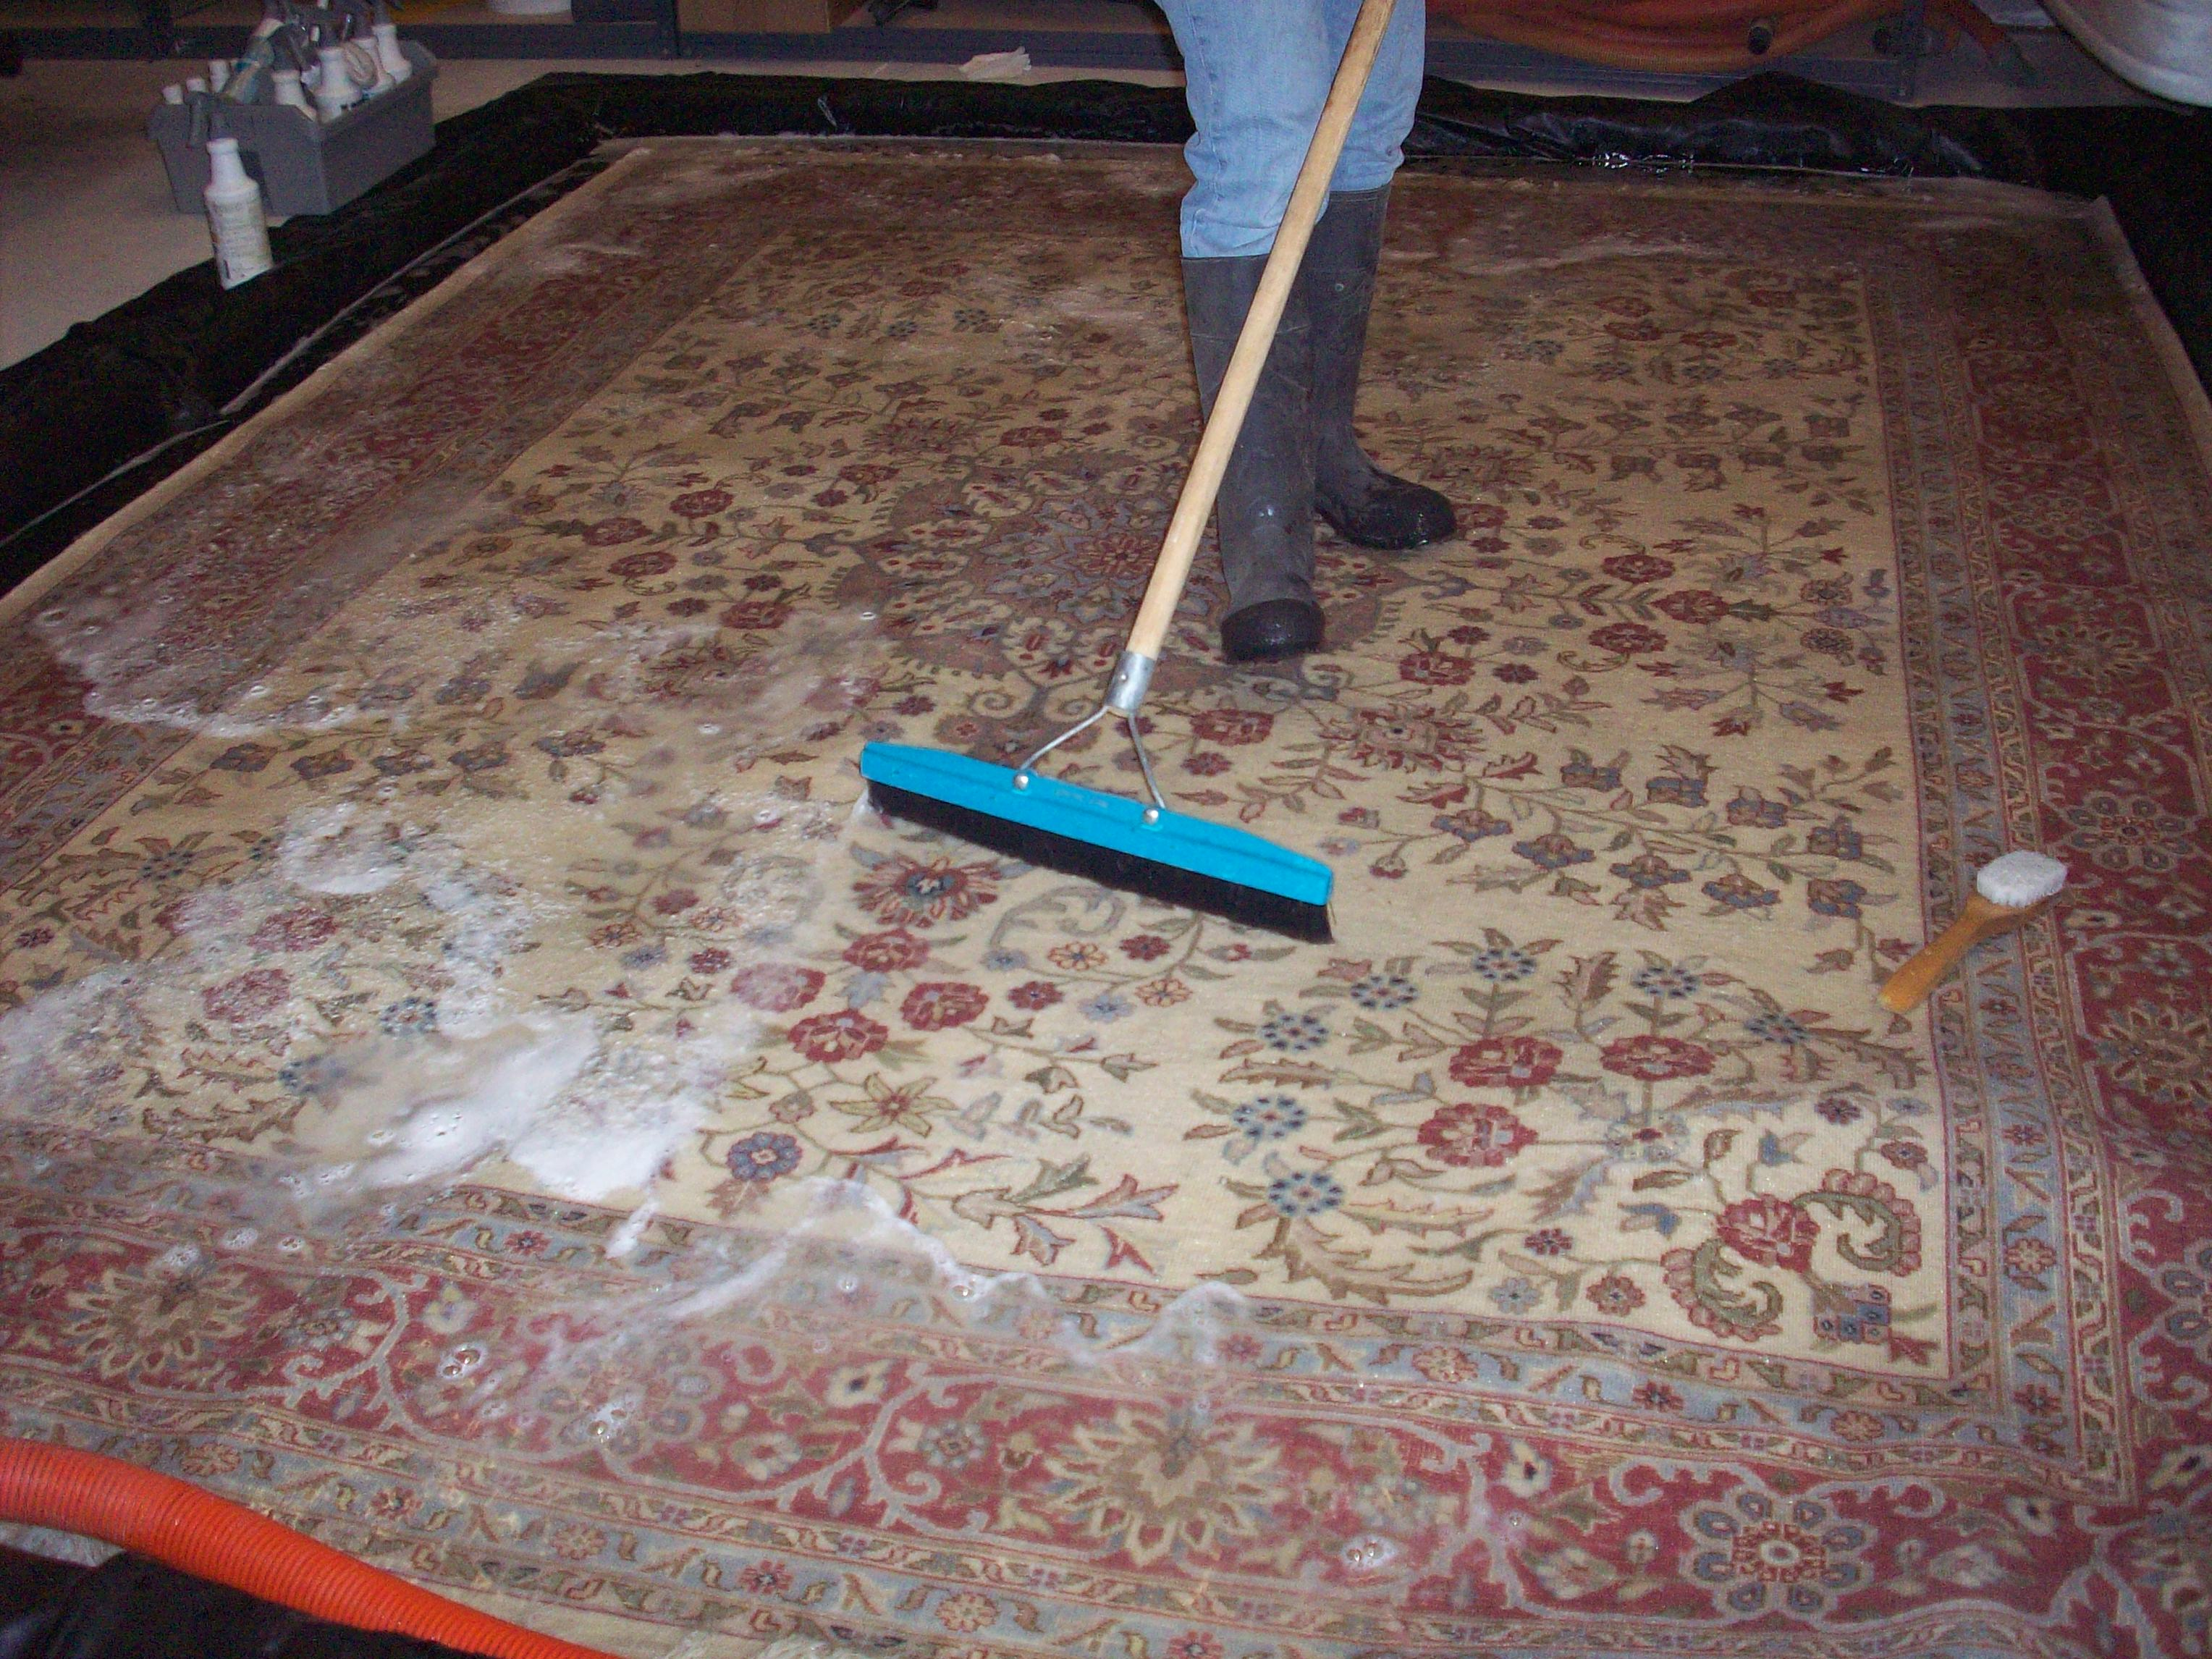 Rug Cleaning Boise Ultimate Carpet Cleaning Boise